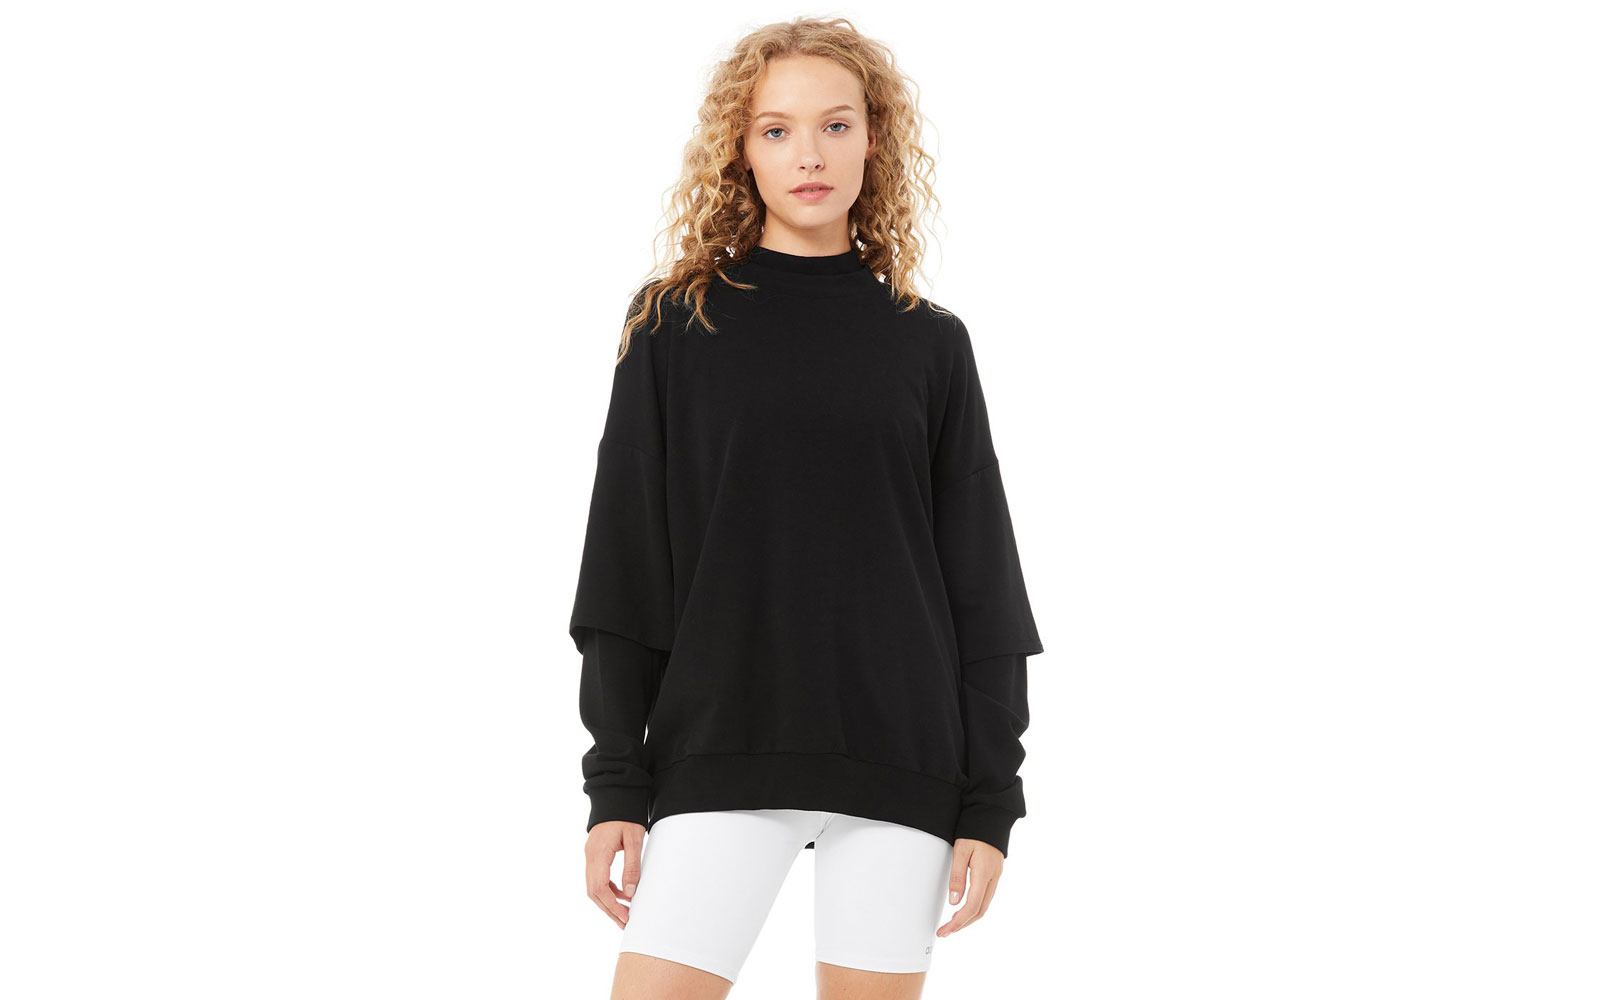 Women's black long sleeve sweatshirt